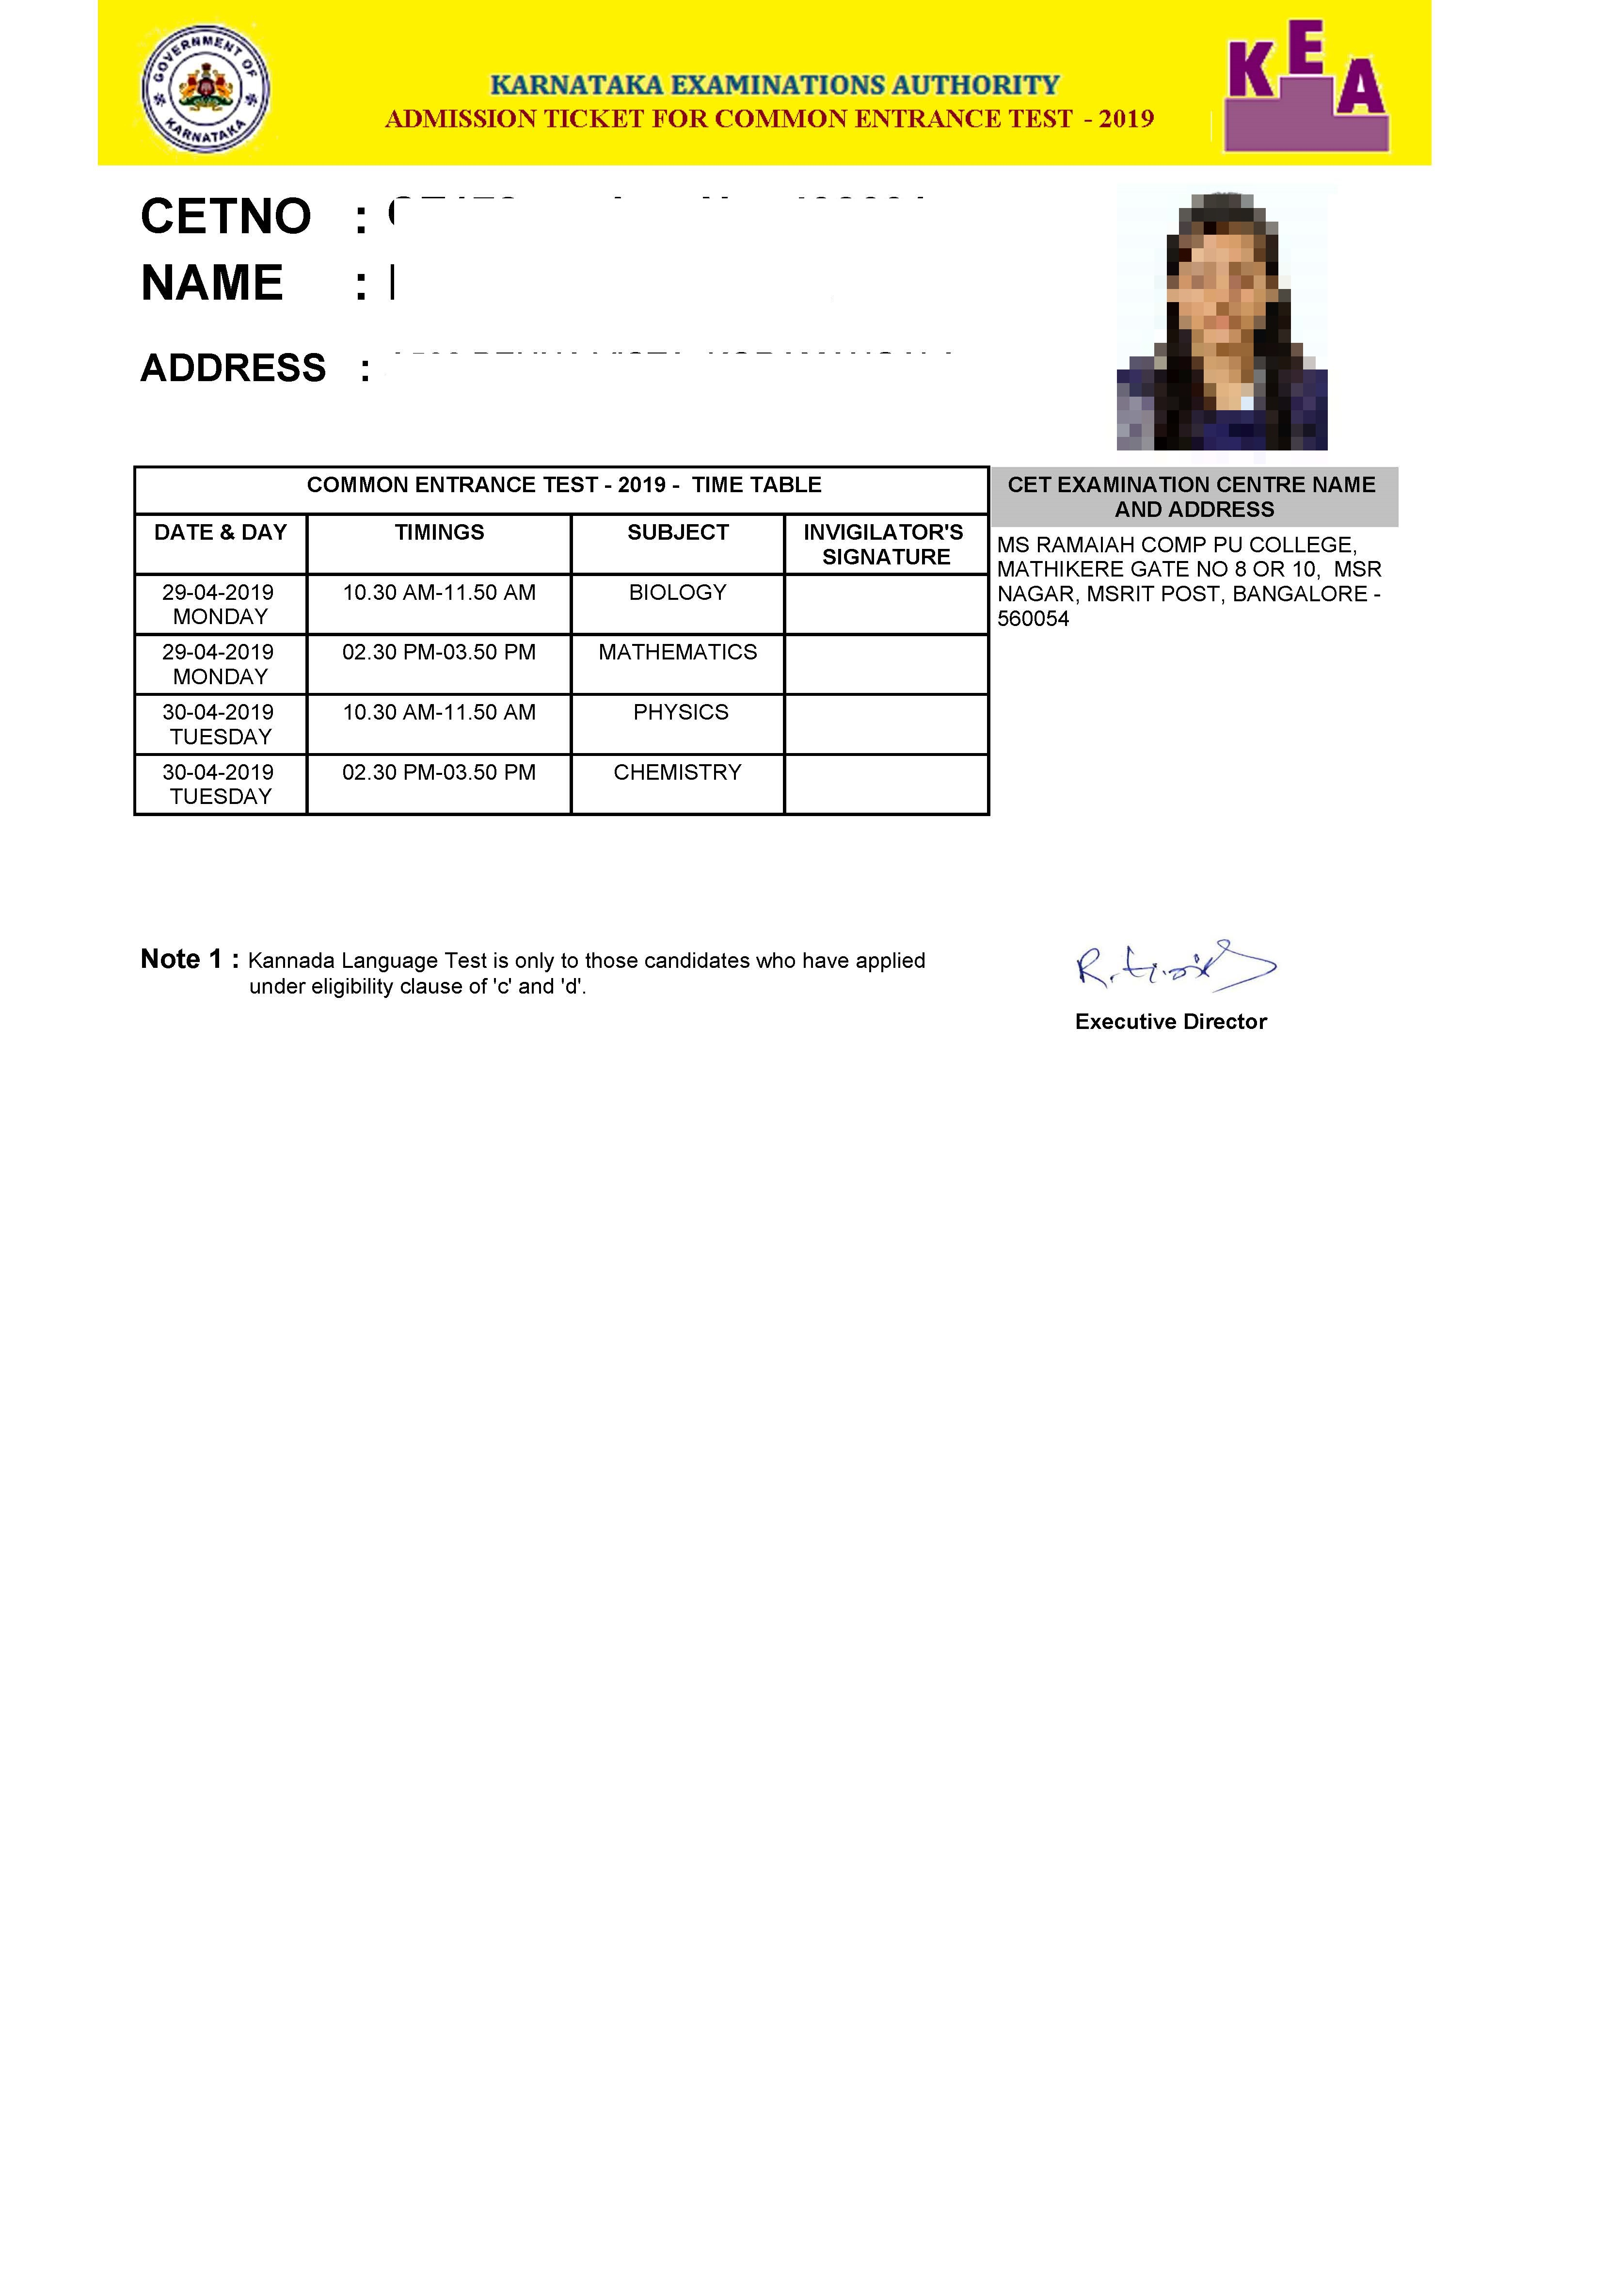 KCET Admit Card 2019 (Released)– Download Hall Ticket